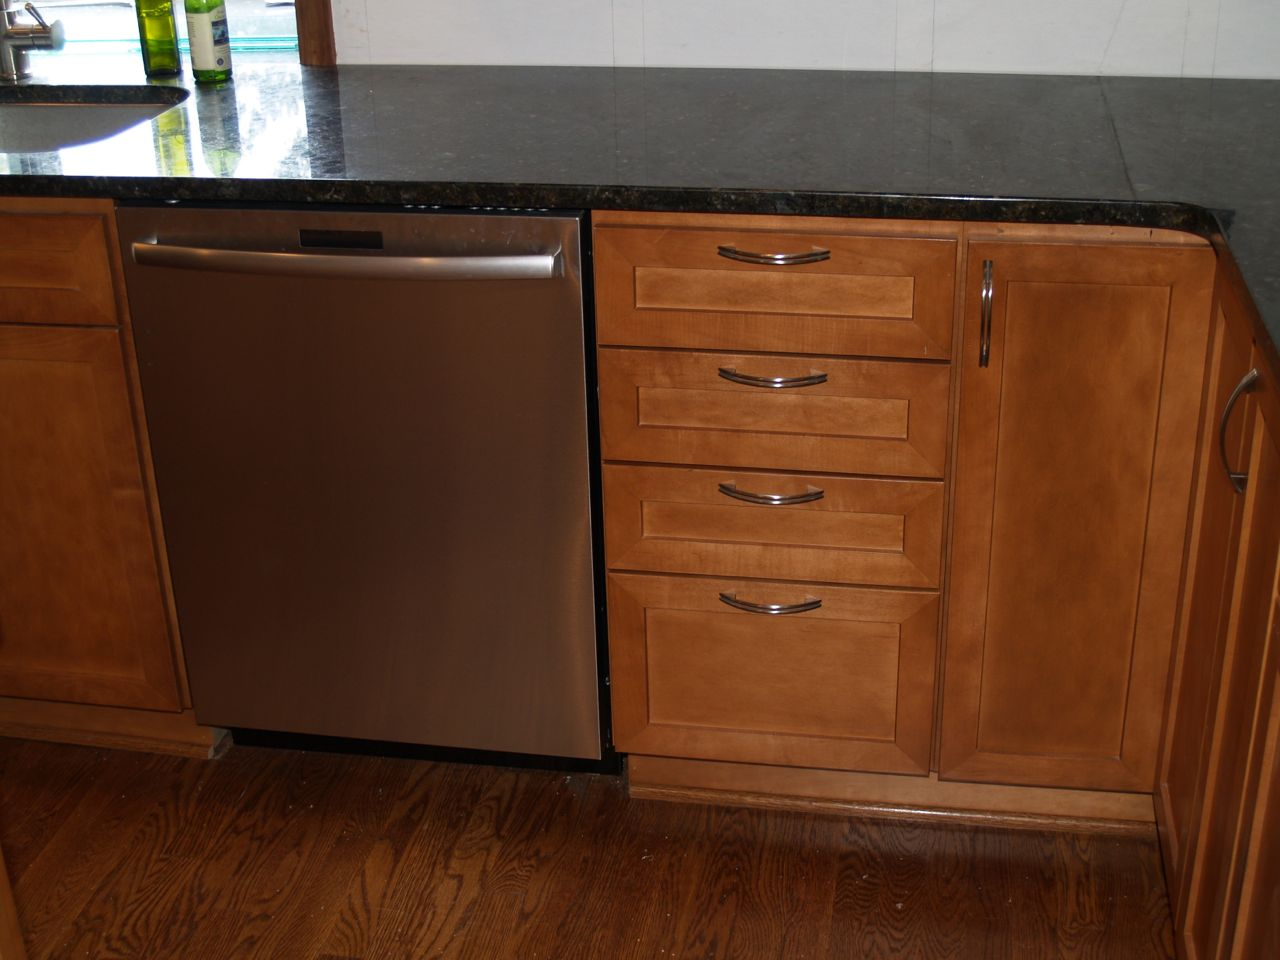 new kitchen cabinets and dishwasher new kitchen cabinets new kitchen cabinets and dishwasher